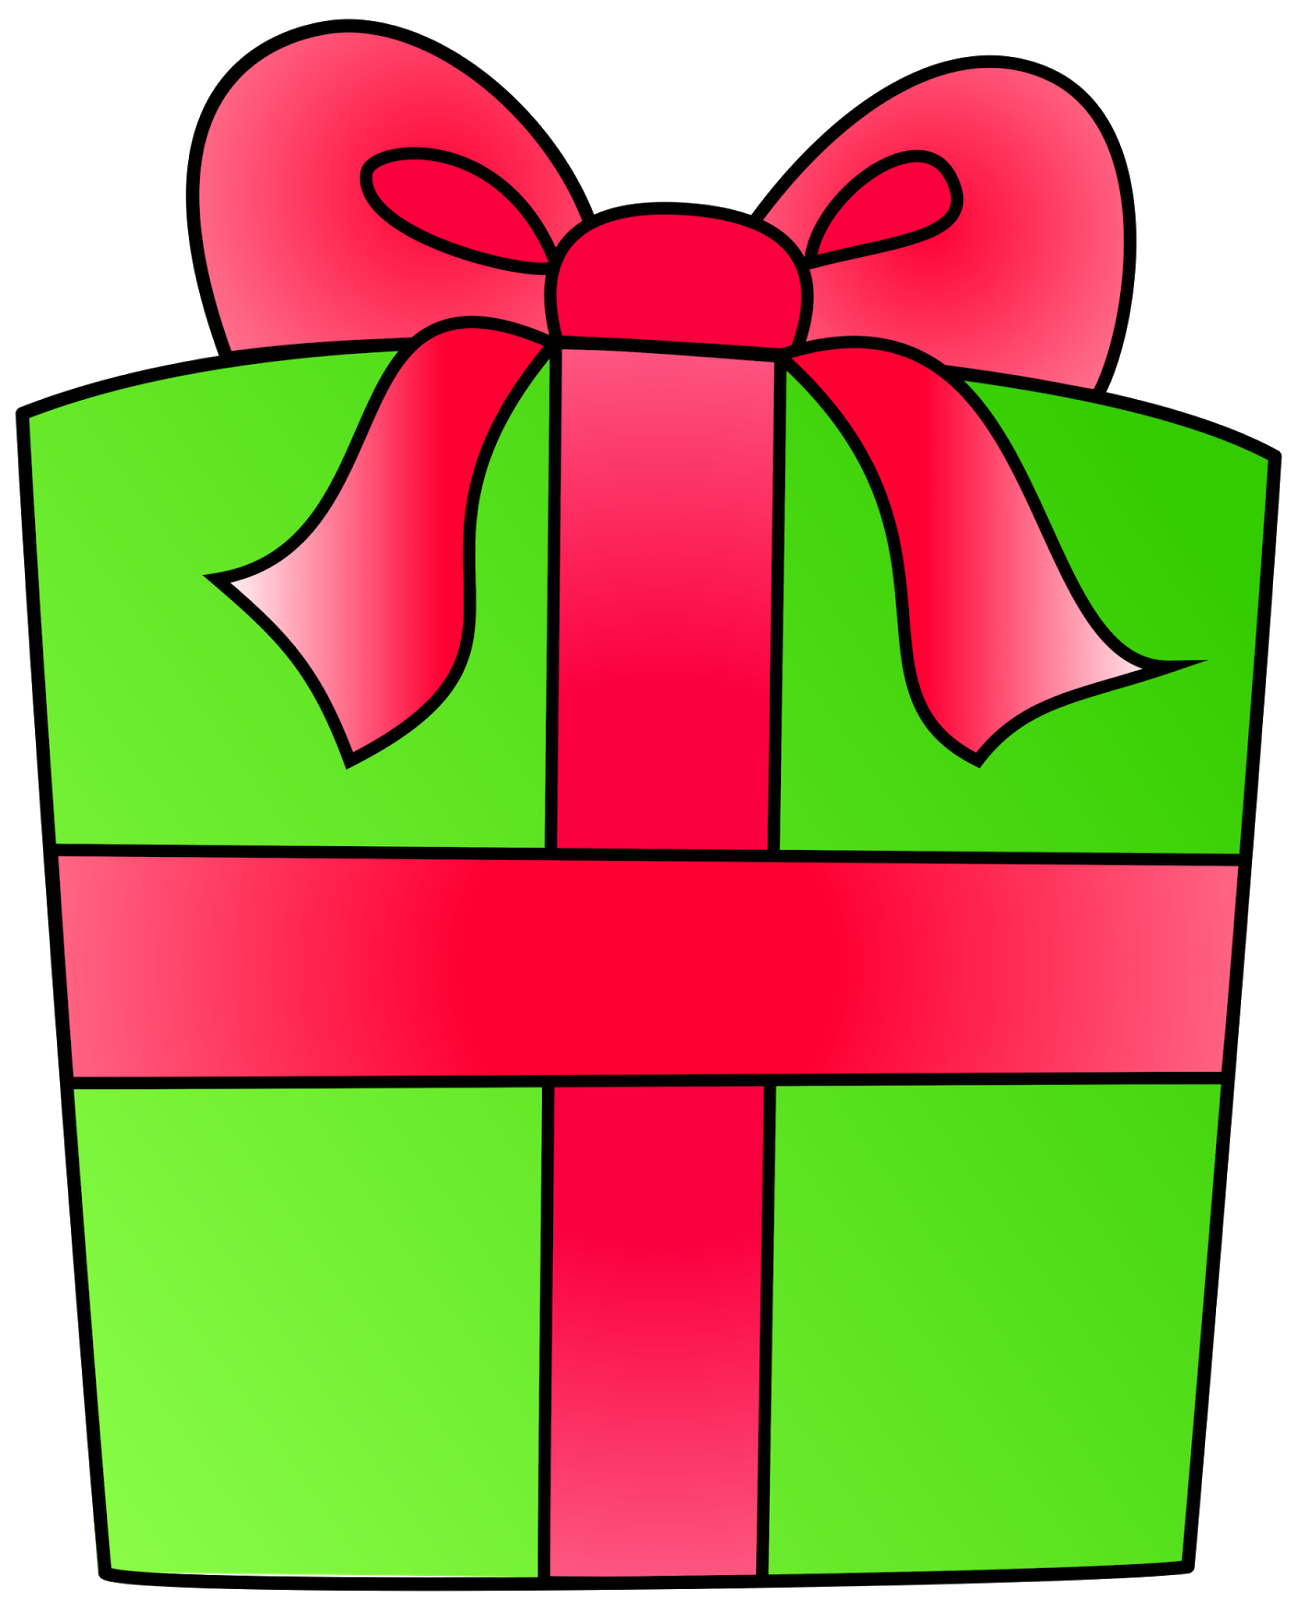 Gift clipart special gift. Free present cliparts download